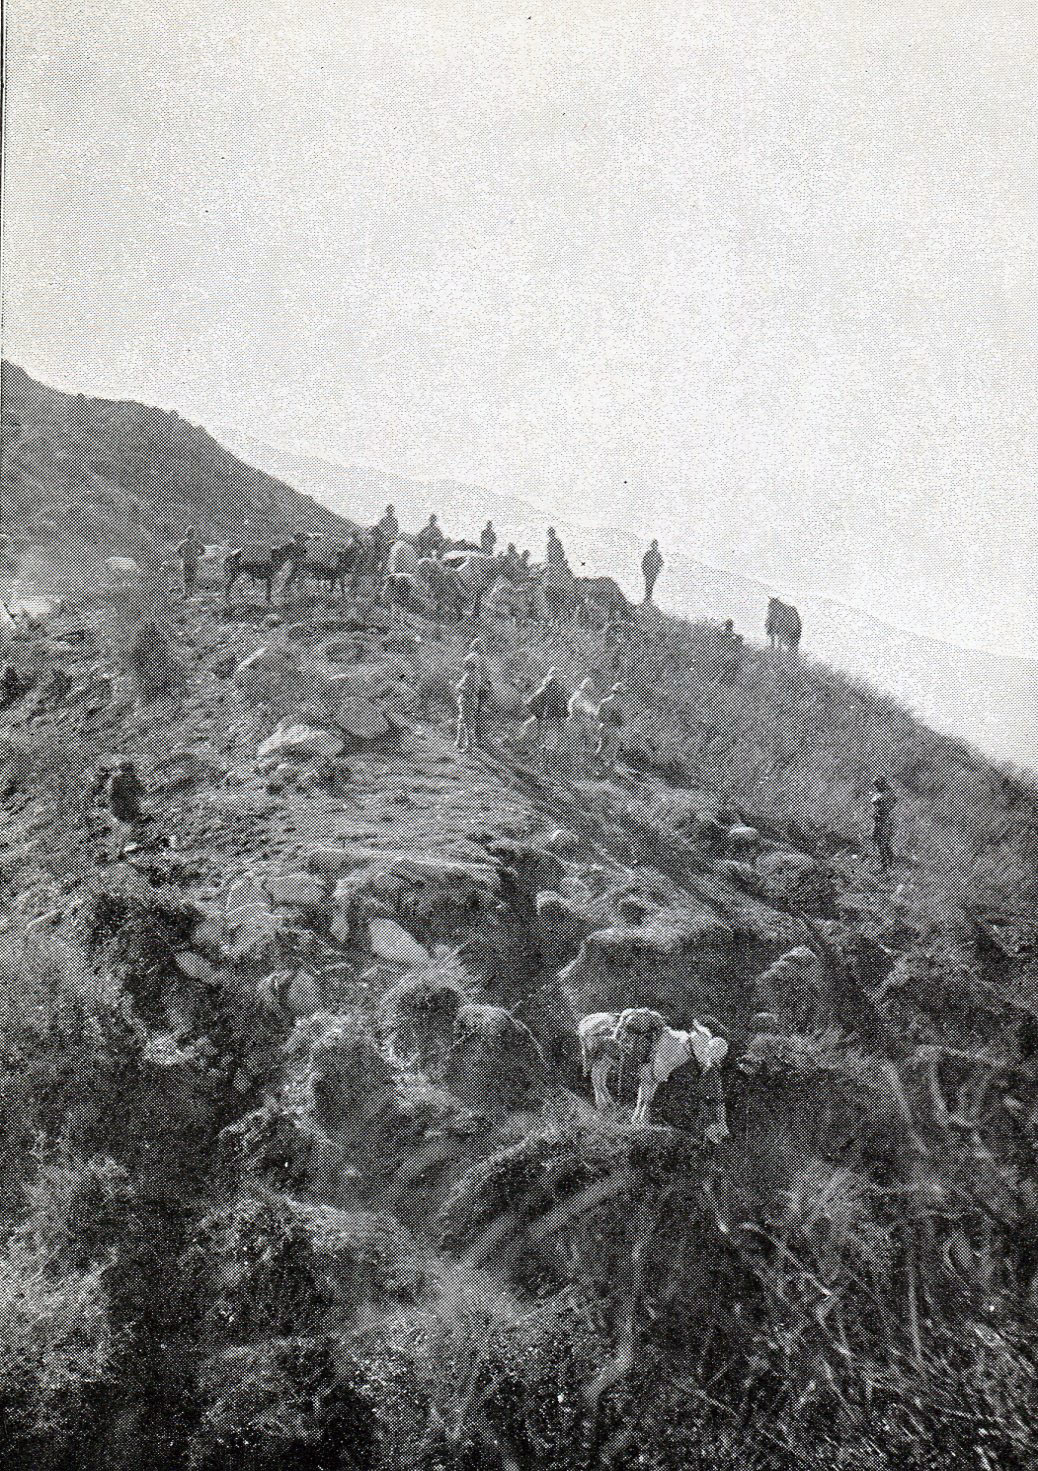 Sir Robert Low and his staff on the Janbatai Pass: Siege and Relief of Chitral, 3rd March to 20th April 1895 on the North-West Frontier of India